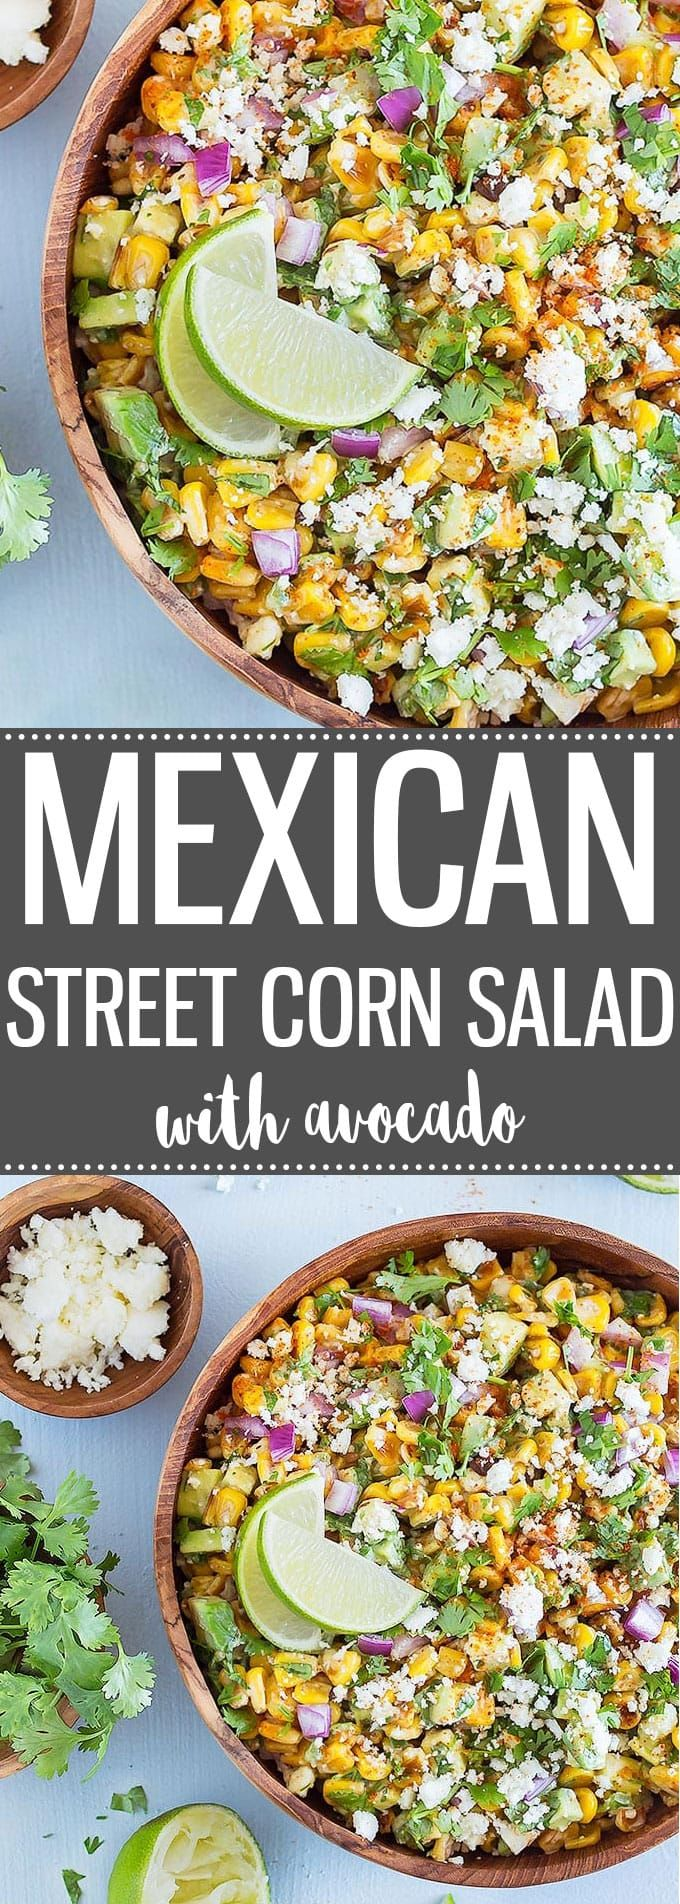 Mexican Street Corn Salad with Avocado is always a crowd-pleaser! It's fast and easy to prepare, and has a tasty balance of fresh flavors and textures. With Cinco de Mayo just around the corner, this recipe is definitely on my list! via @easyasapplepie